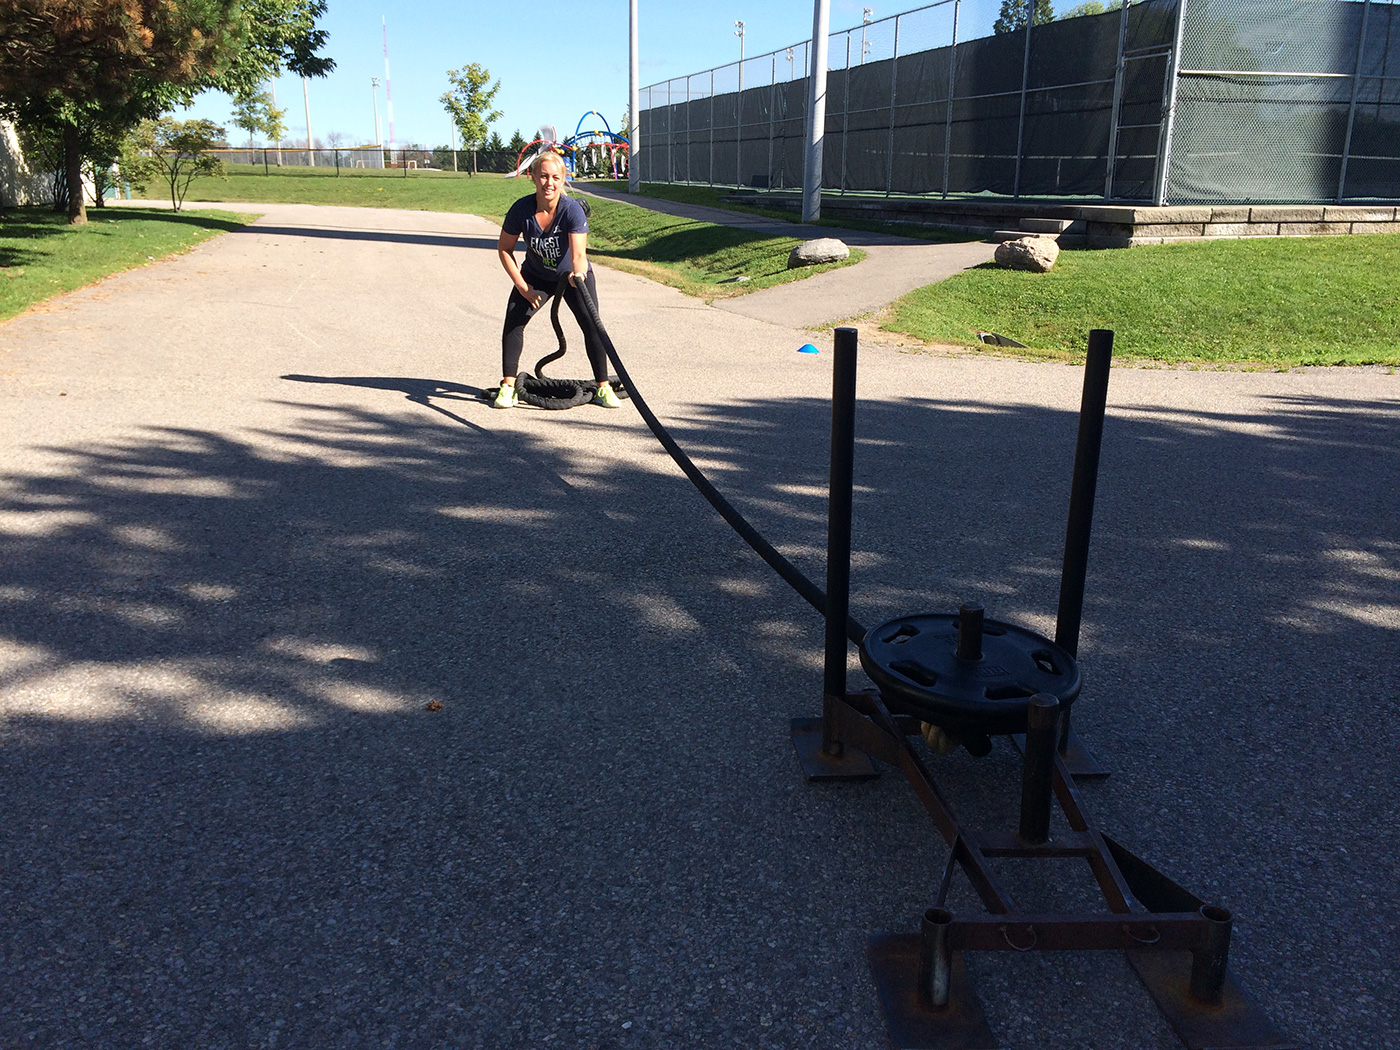 Adult---Boot-Camp---Prowler-Rope-Pull-Giroux